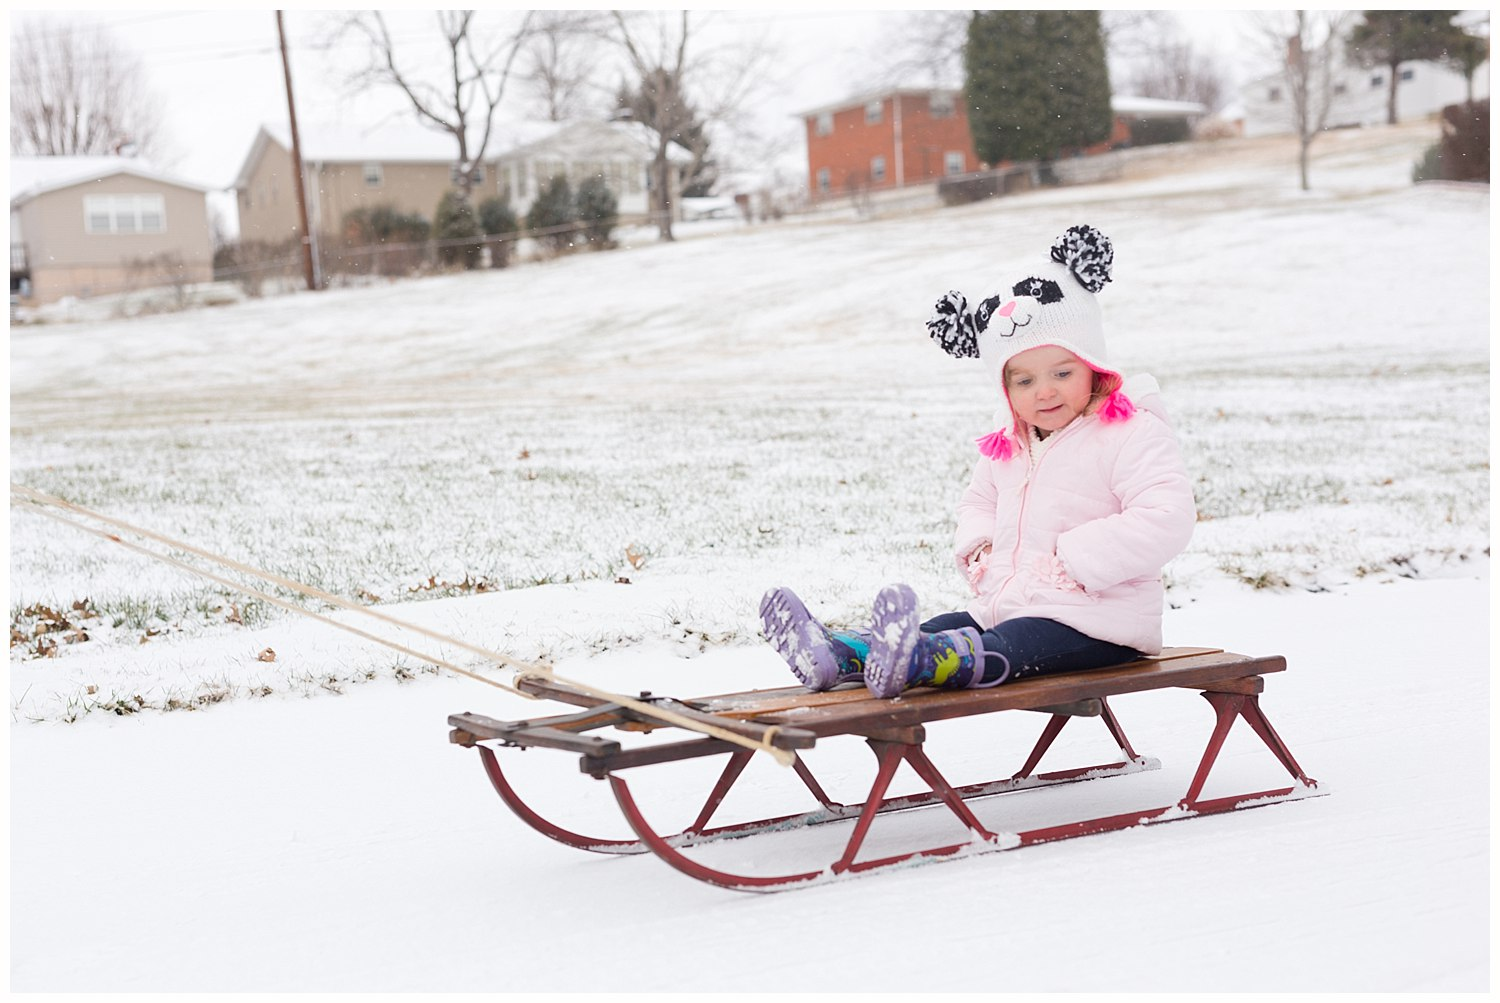 two-year-old girl on antique sled in the snow